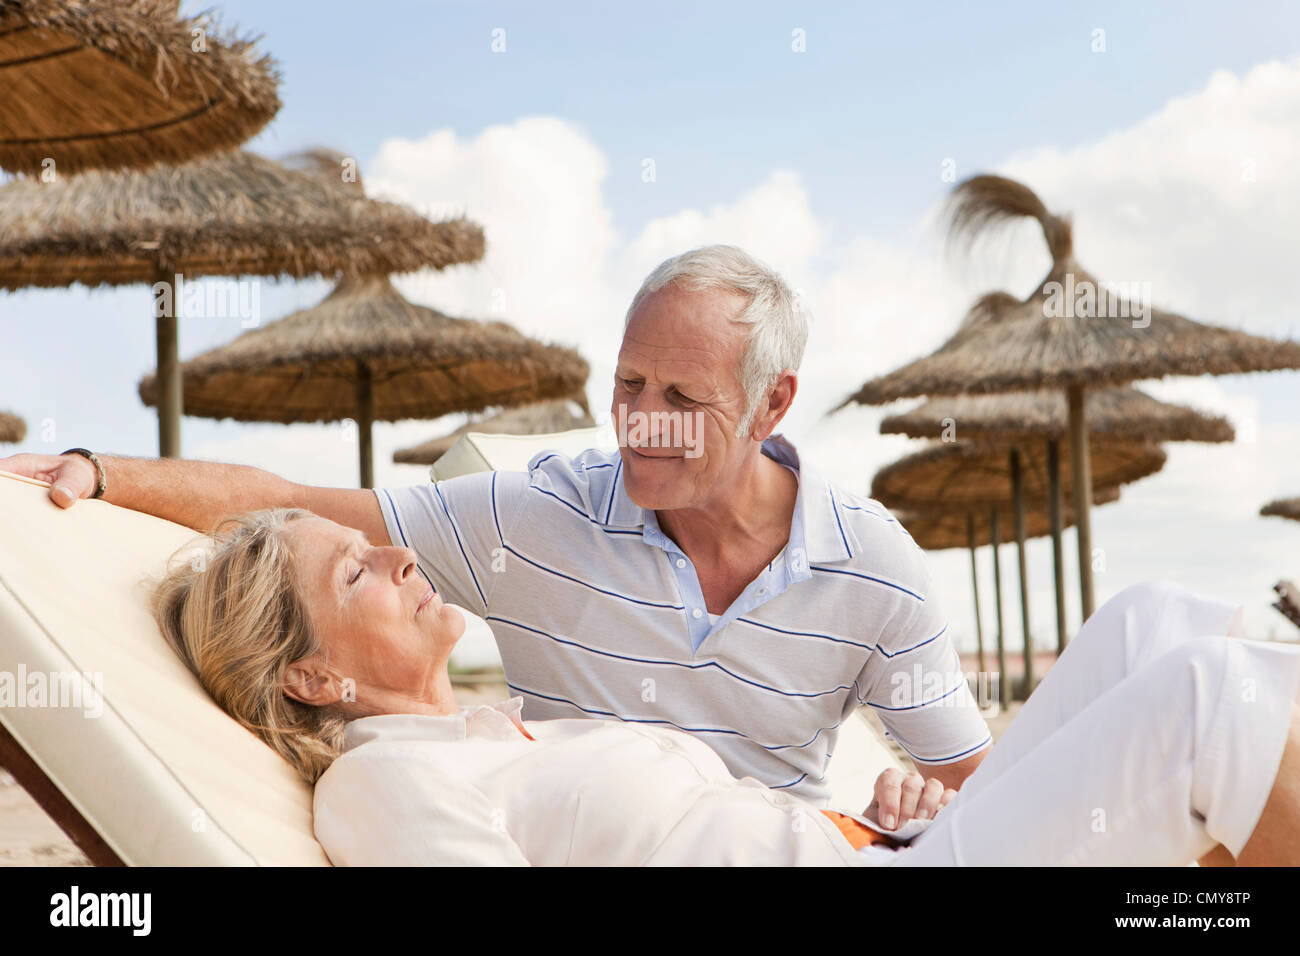 Spain, Mallorca, Senior man looking at woman resting on deck chair at beach - Stock Image